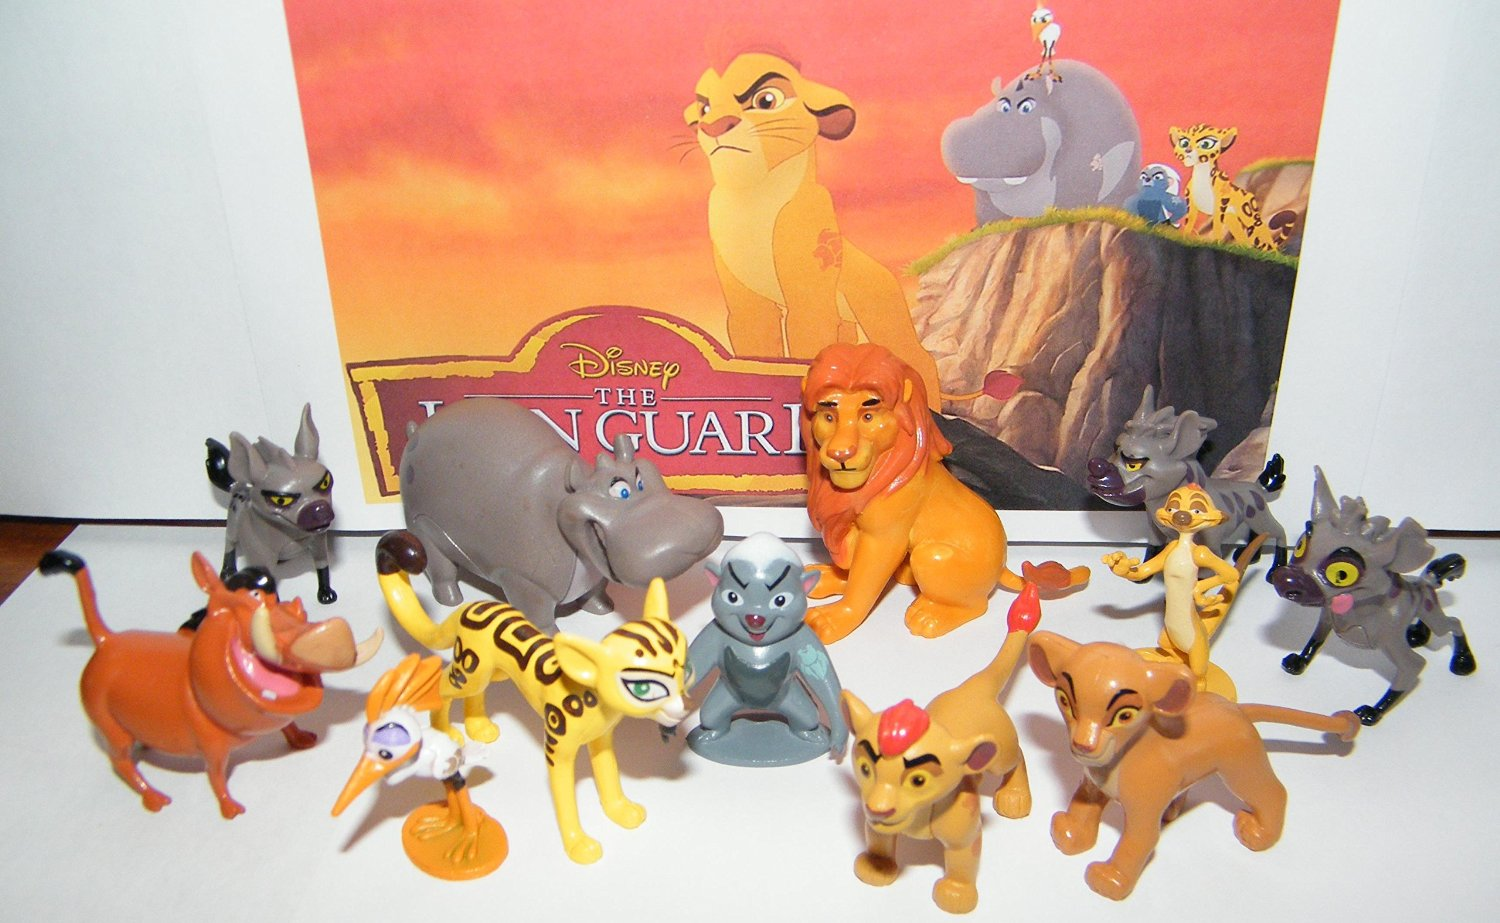 Disney The Lion Guard Deluxe Party Favors Goody Bag Fillers Set of 13 Figures with the 5 Lion Guard Figures, Princess Kiara, King Simba, Pumon, Simon and More!